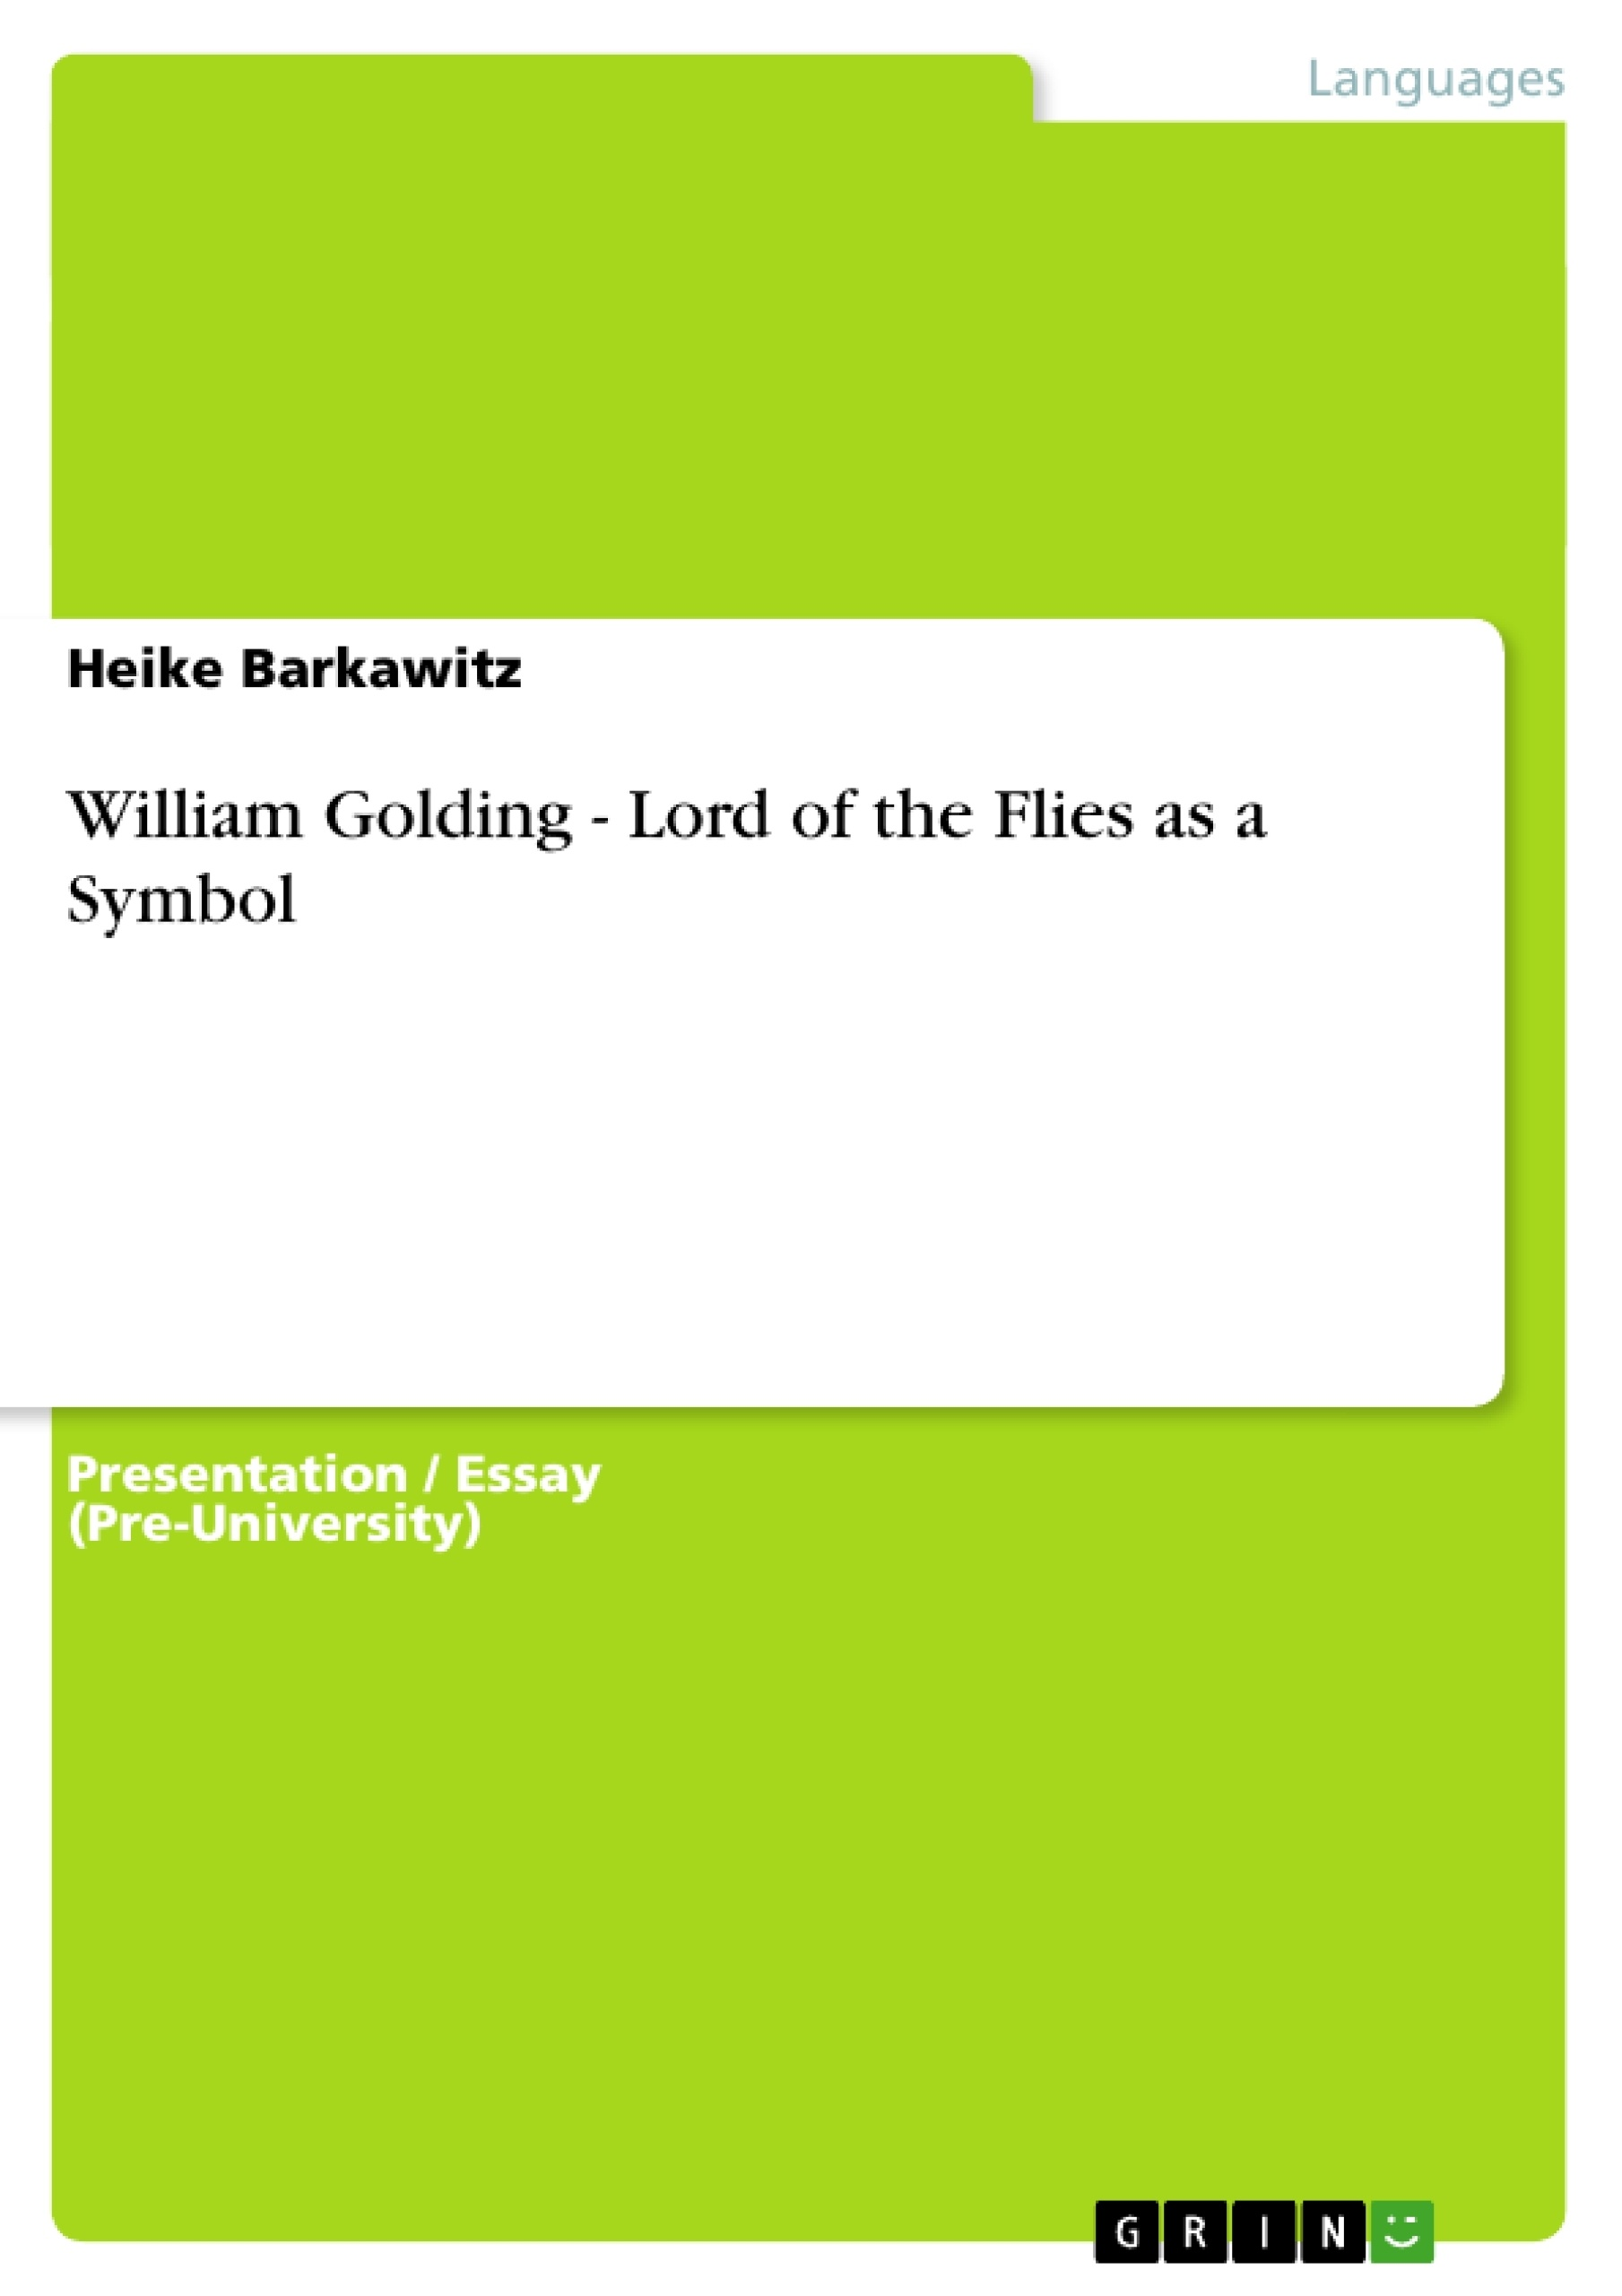 essay lord of the flies william golding lord of the flies as a  william golding lord of the flies as a symbol publish your william golding lord of the